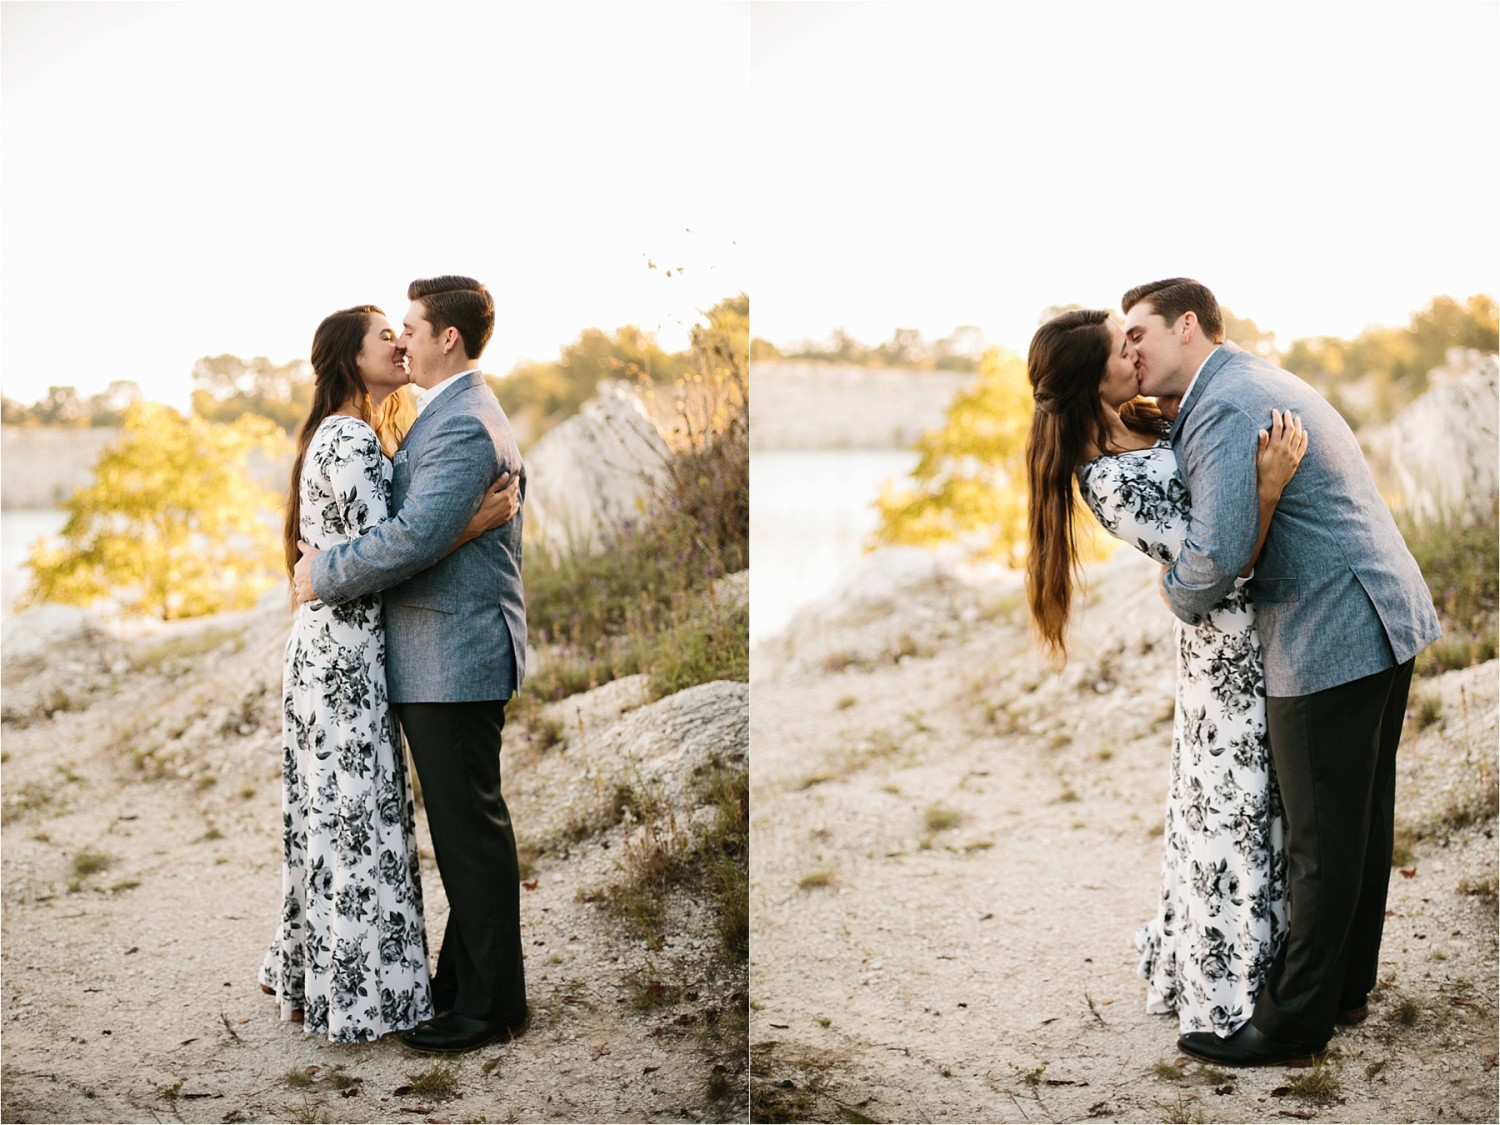 an-intimate-sunrise-session-by-north-texas-wedding-photographer-rachel-meagan-photography-_-29